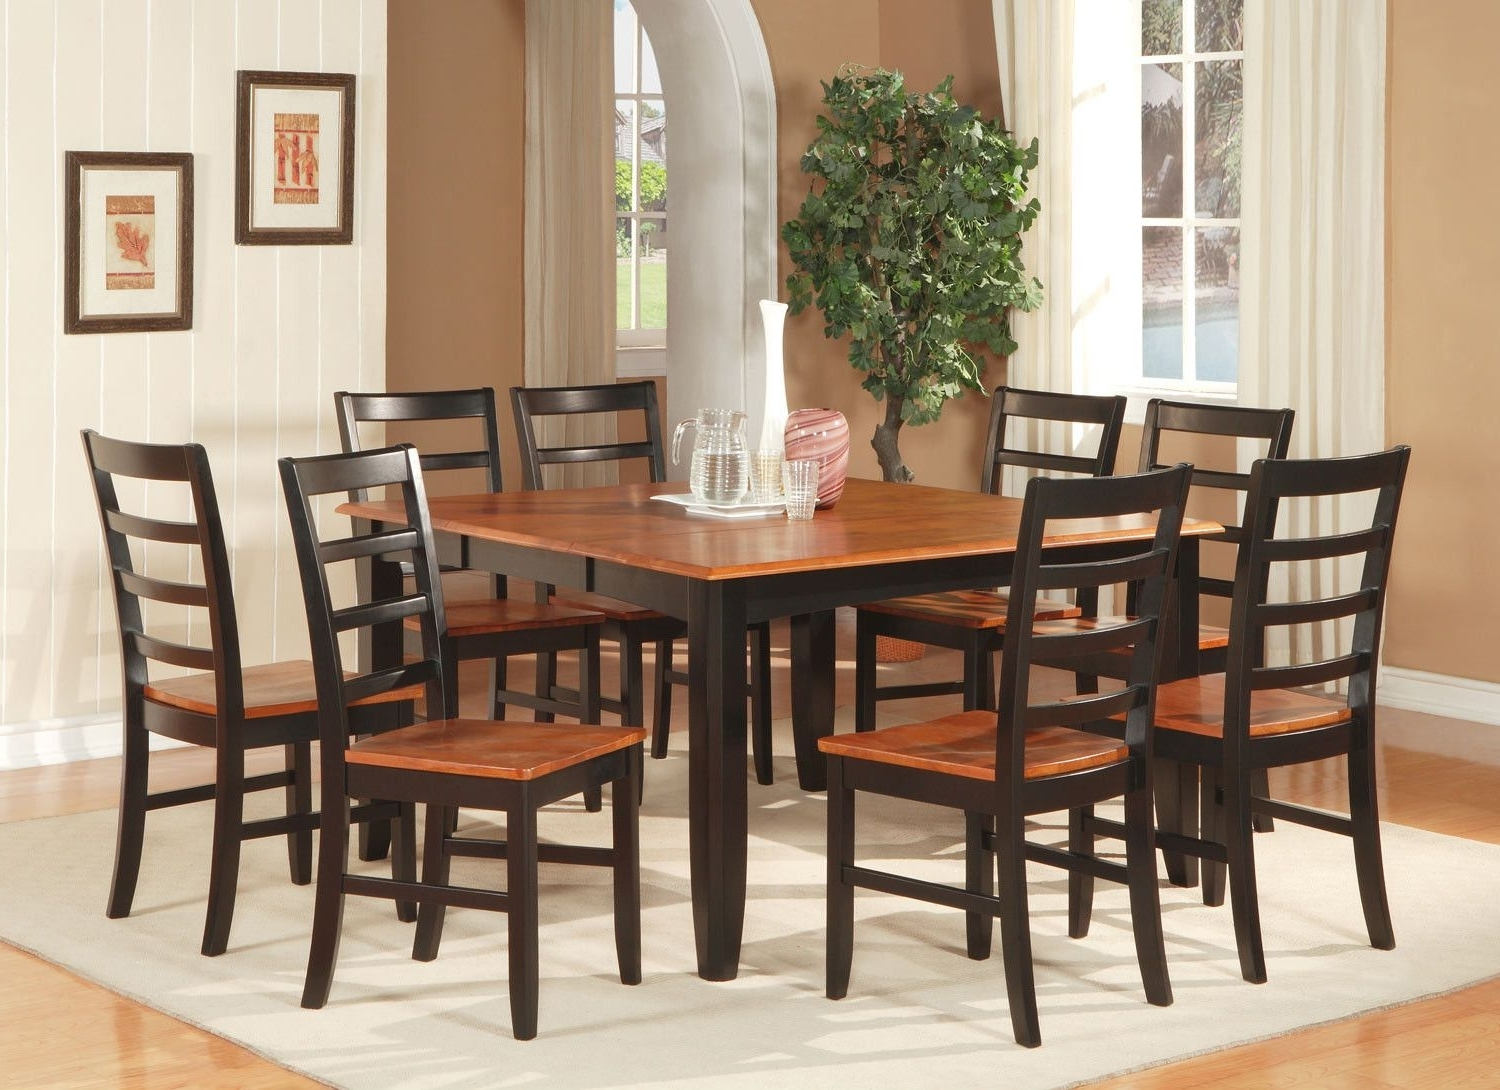 Kirsten 5 Piece Dining Sets for Most Recently Released Parfait 7 Piece Dining Set In 2018